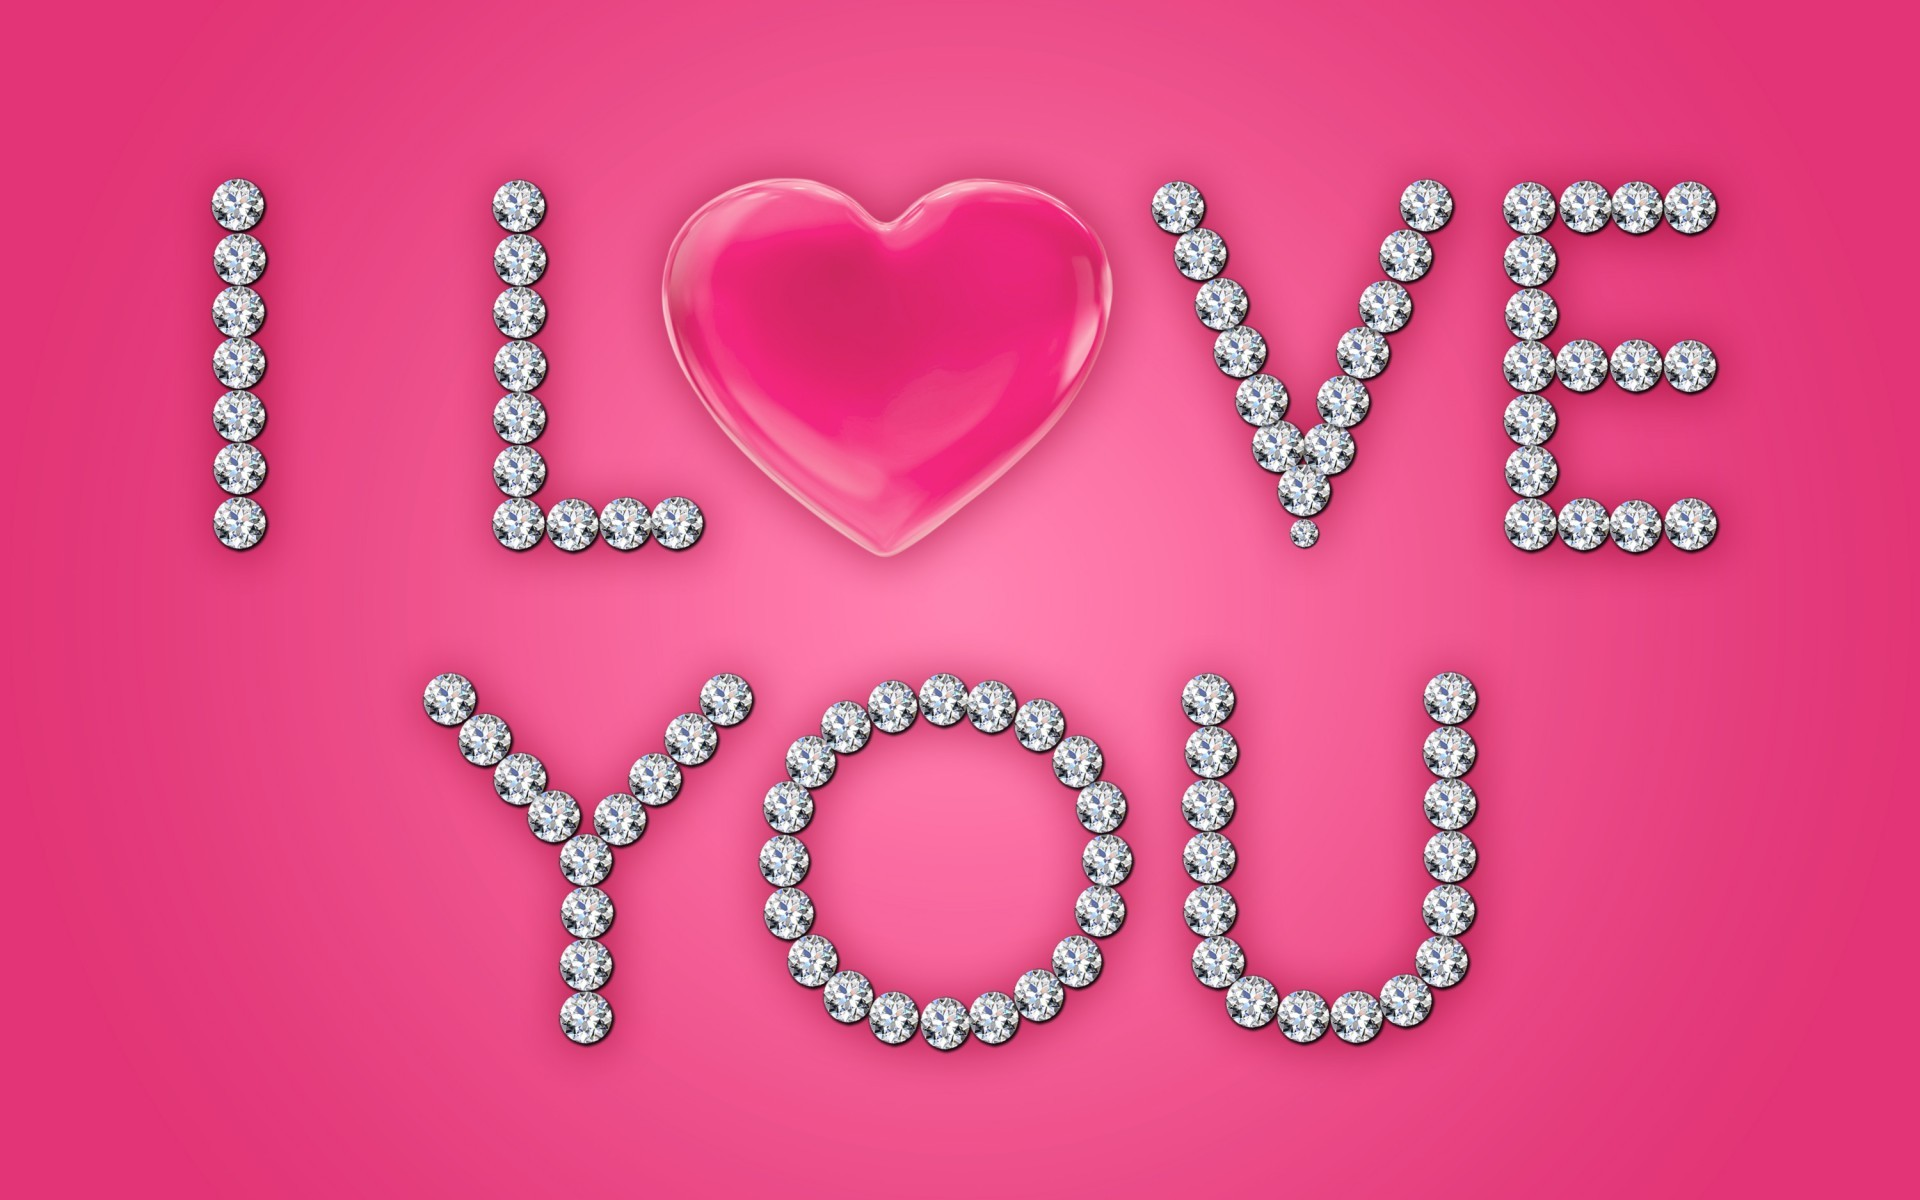 Res: 1920x1200, Image: I Love You Diamonds Pink Heart wallpapers and stock photos. Â«